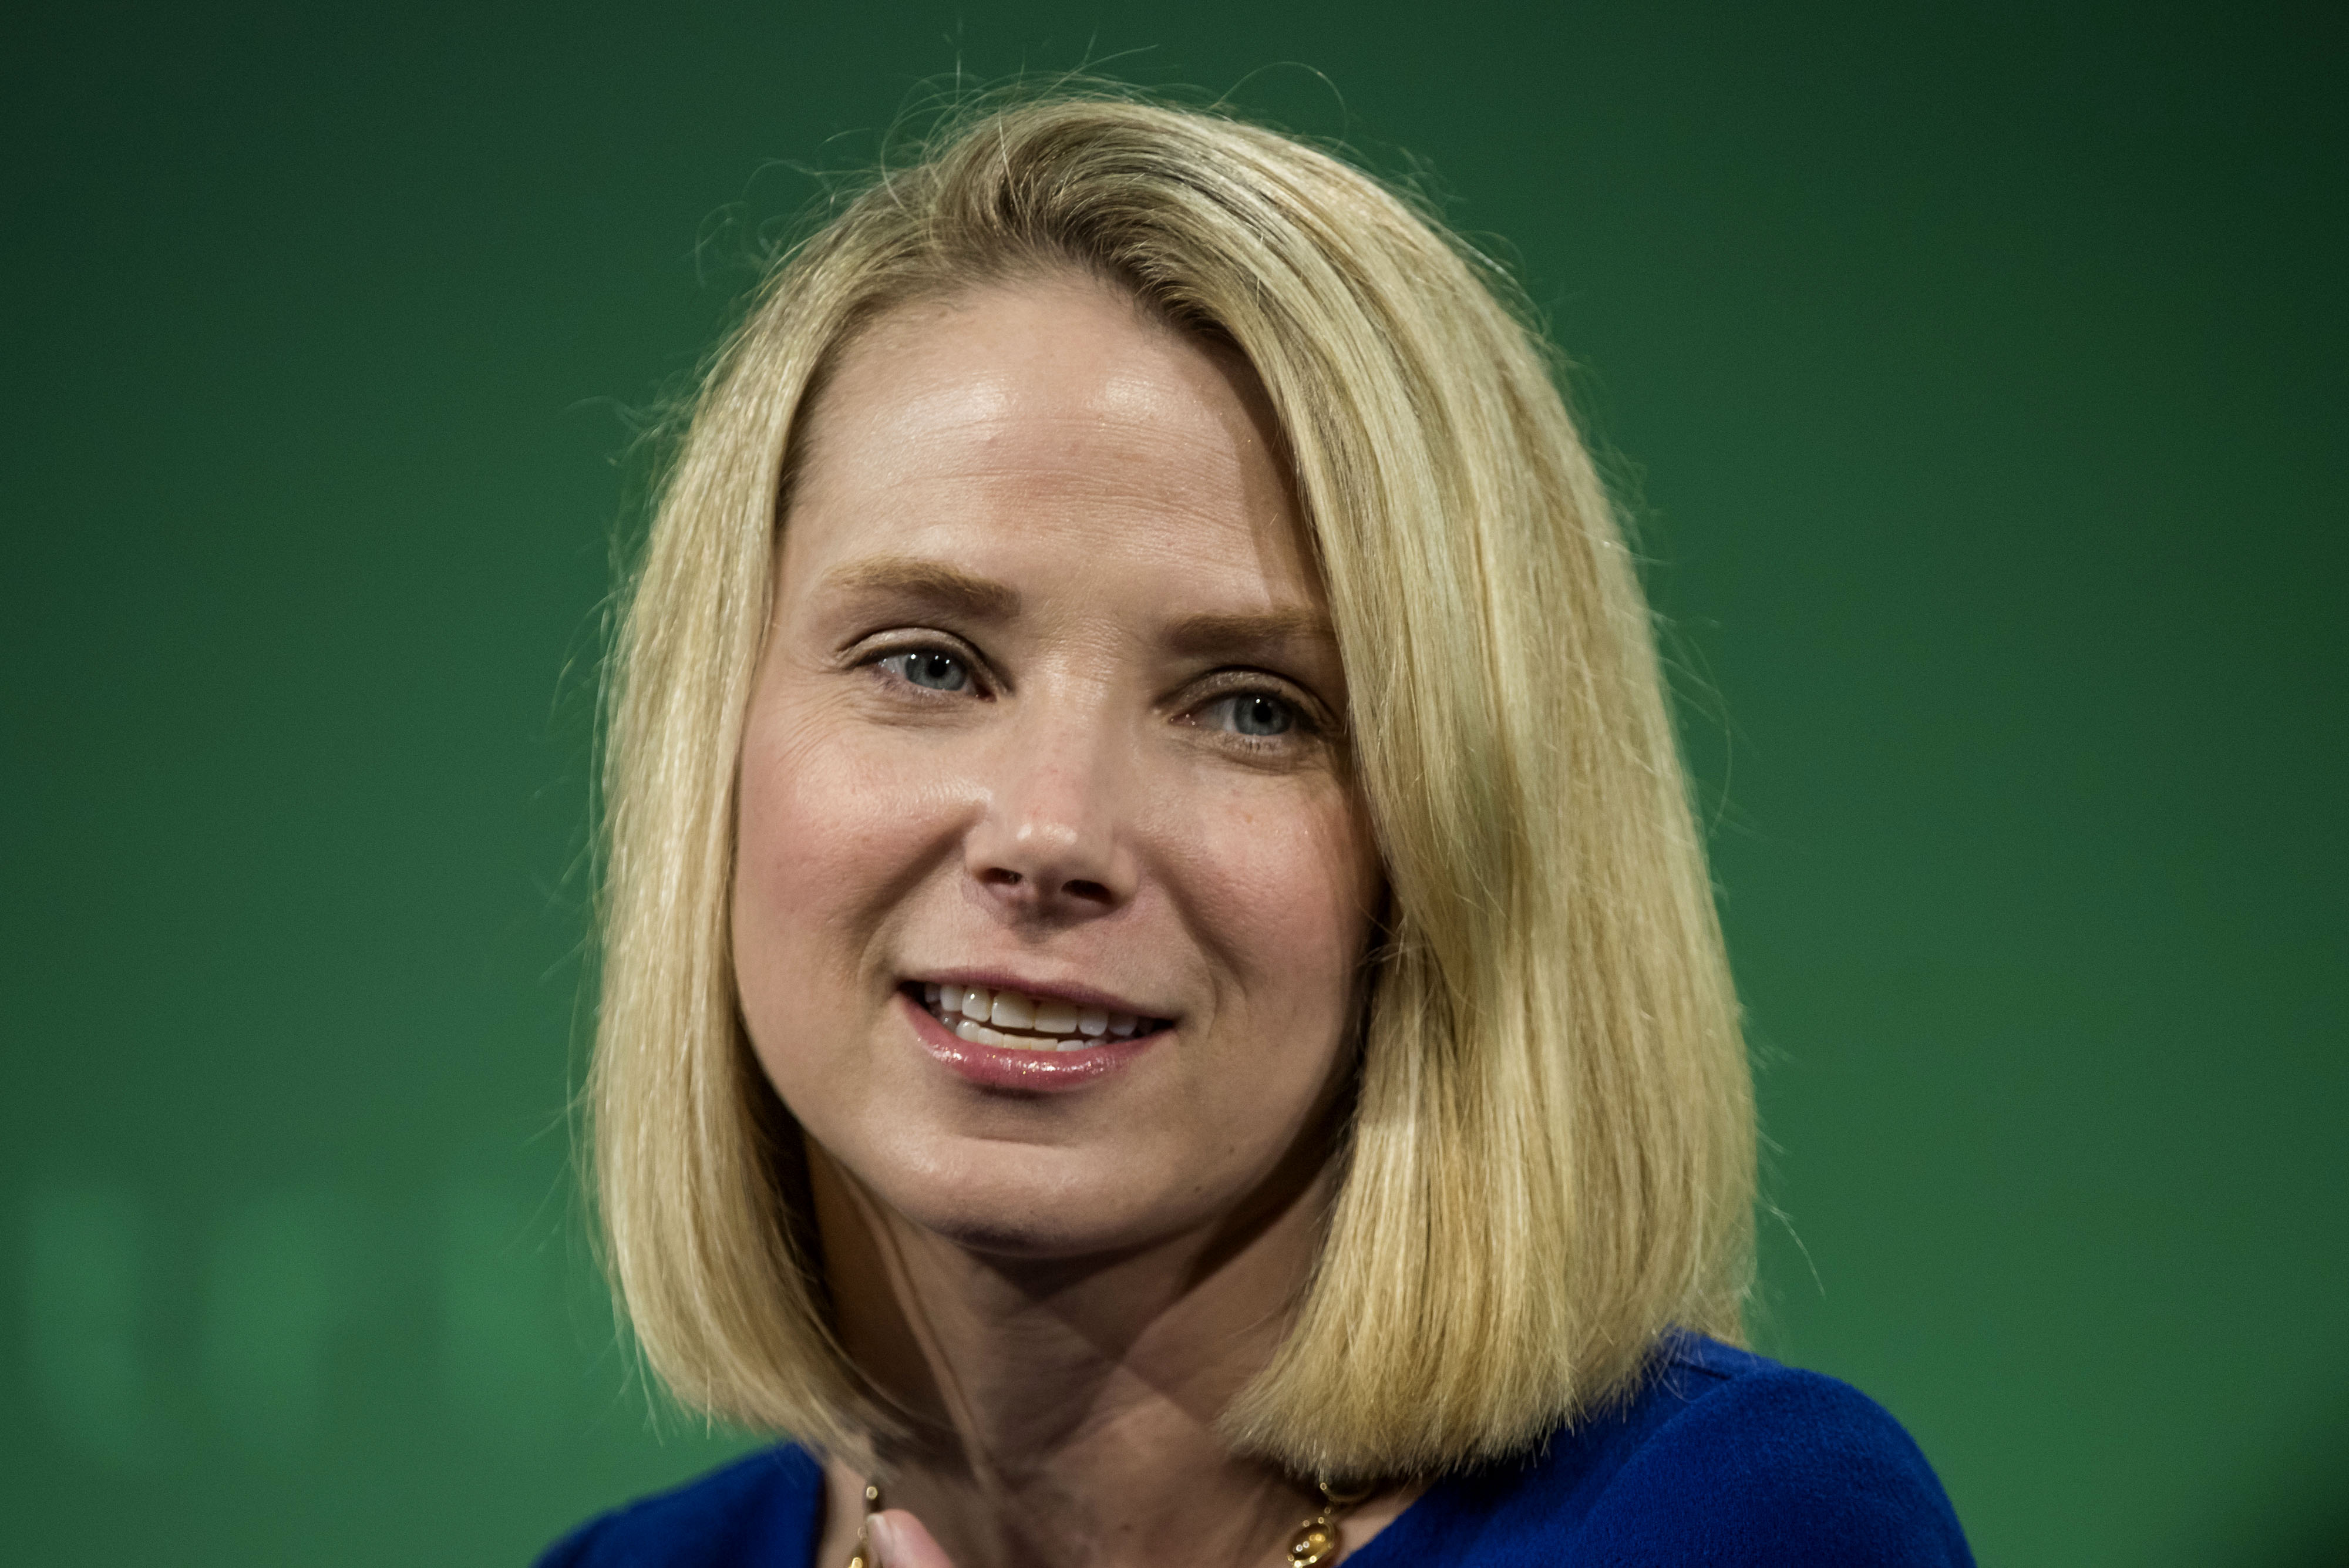 Marissa Mayer, president and chief executive officer at Yahoo! Inc., during the 2015 Bloomberg Technology Conference in San Francisco on June 16, 2015.